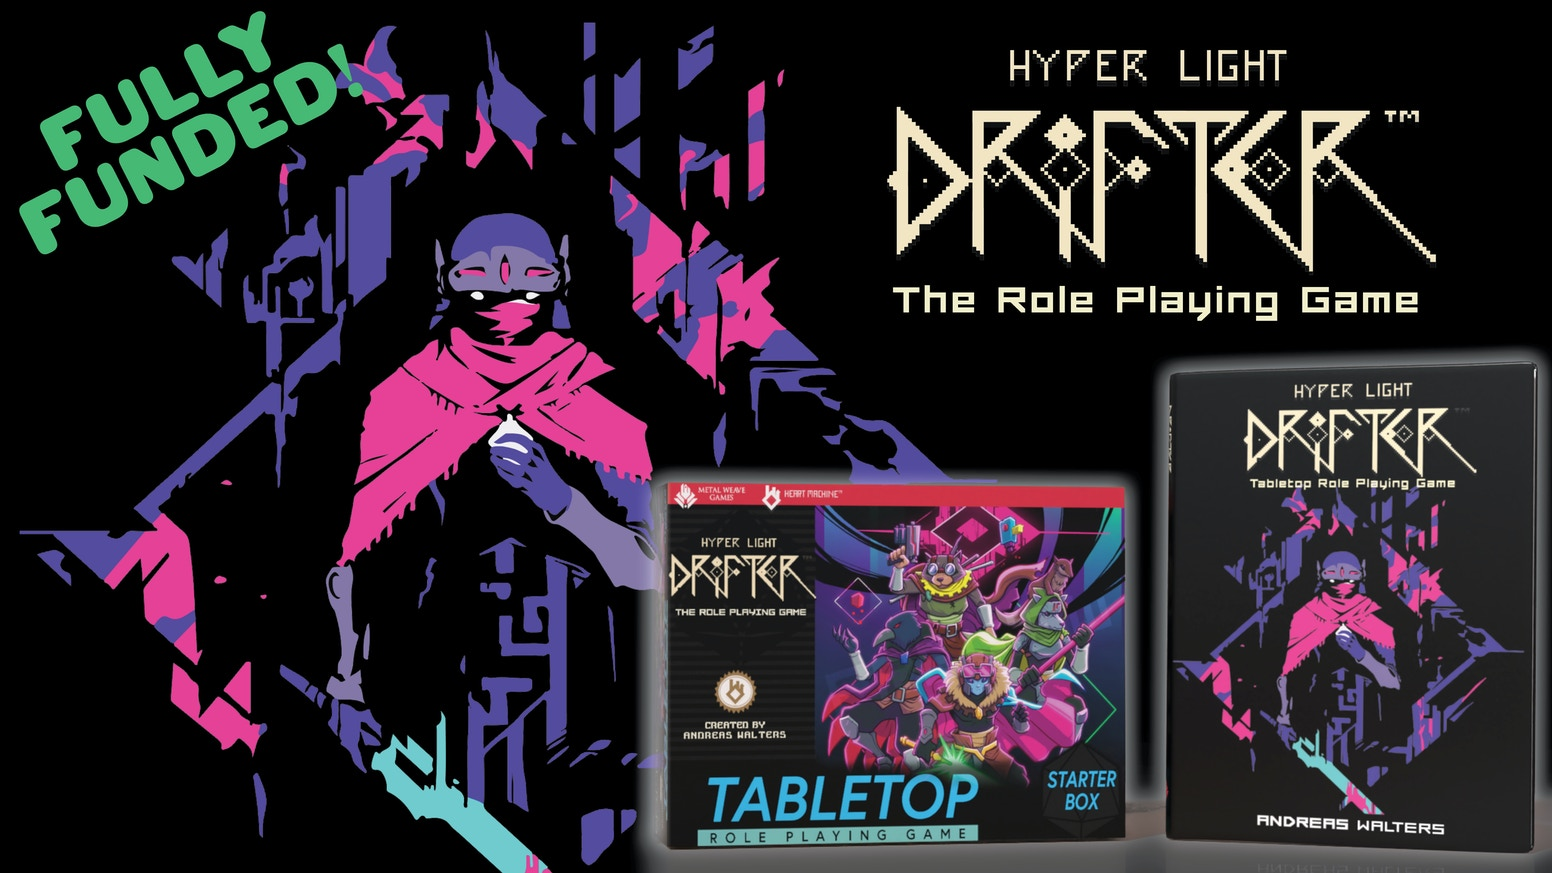 A tabletop role playing game based on the award-winning video game: Hyper Light Drifter.